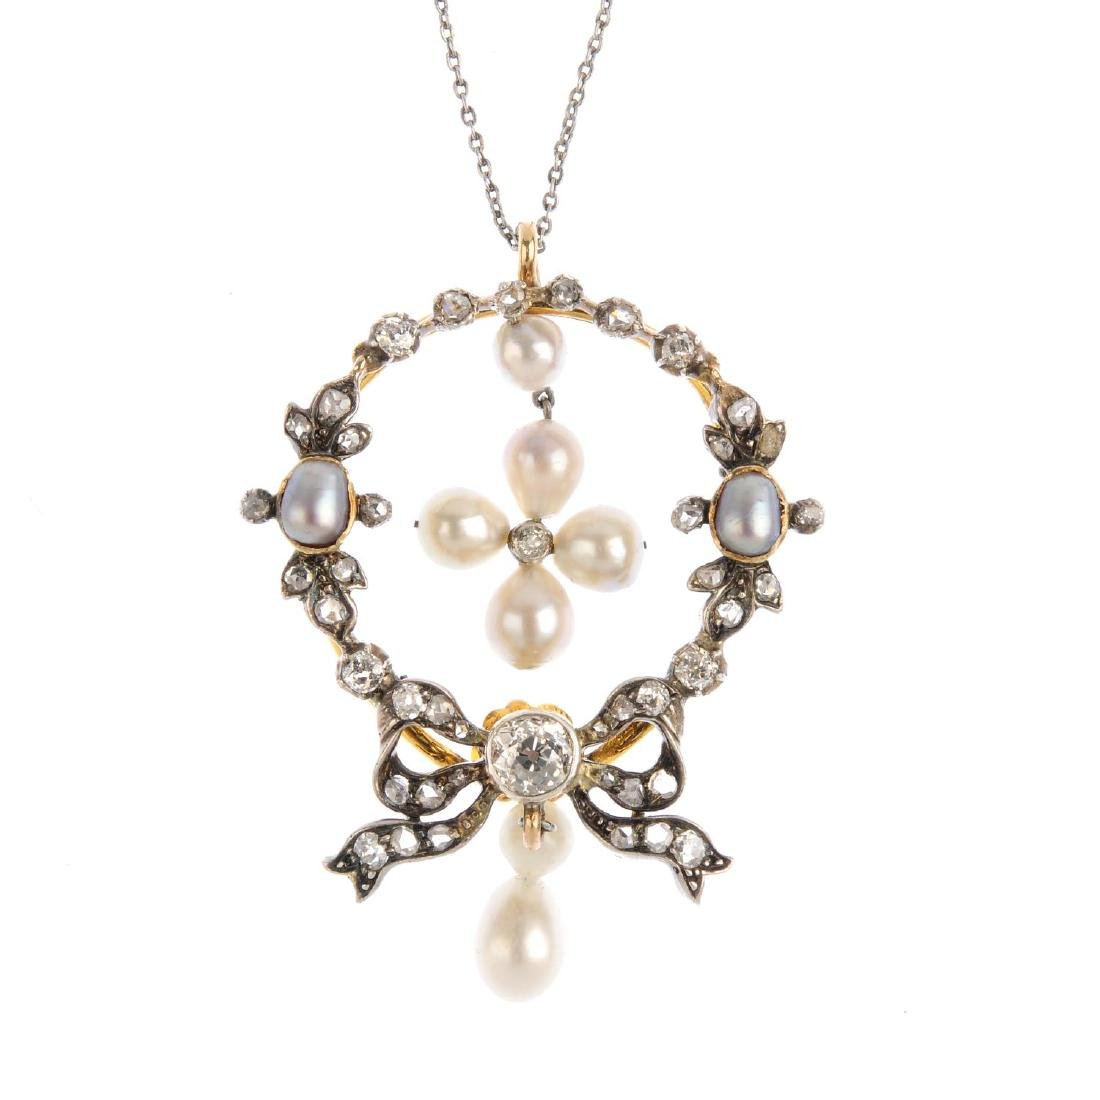 A late 19th century pearl and diamond pendant. The